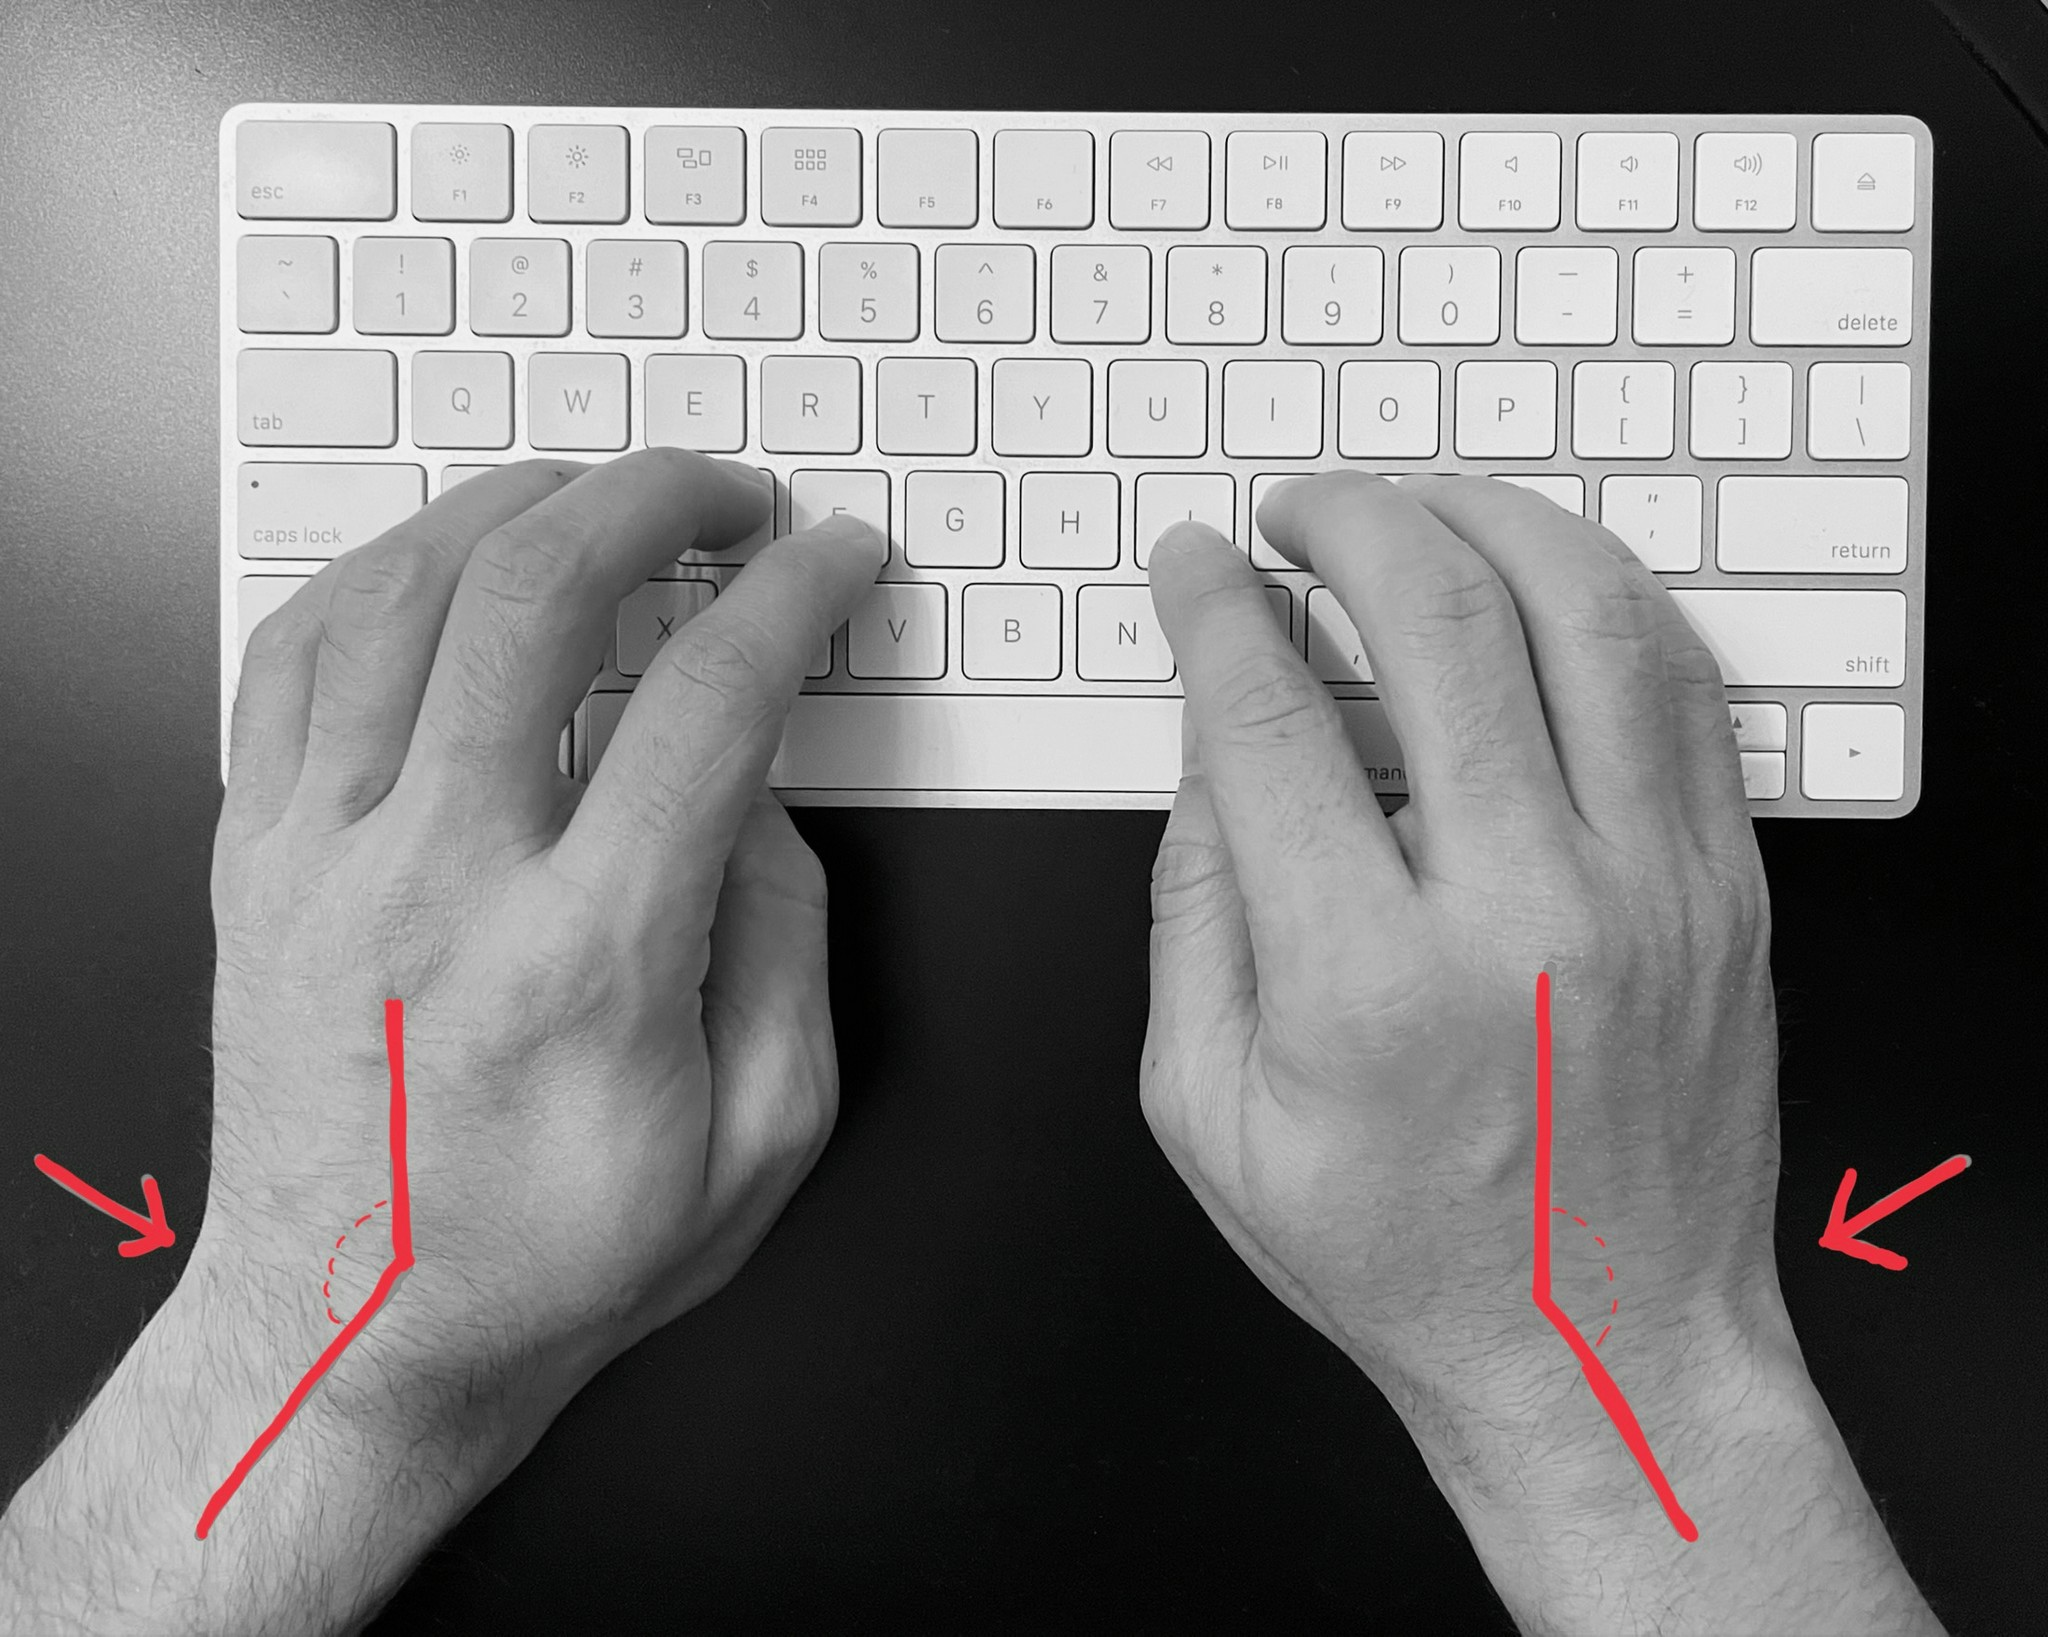 Using the keyboard in this position for a long time causes pain